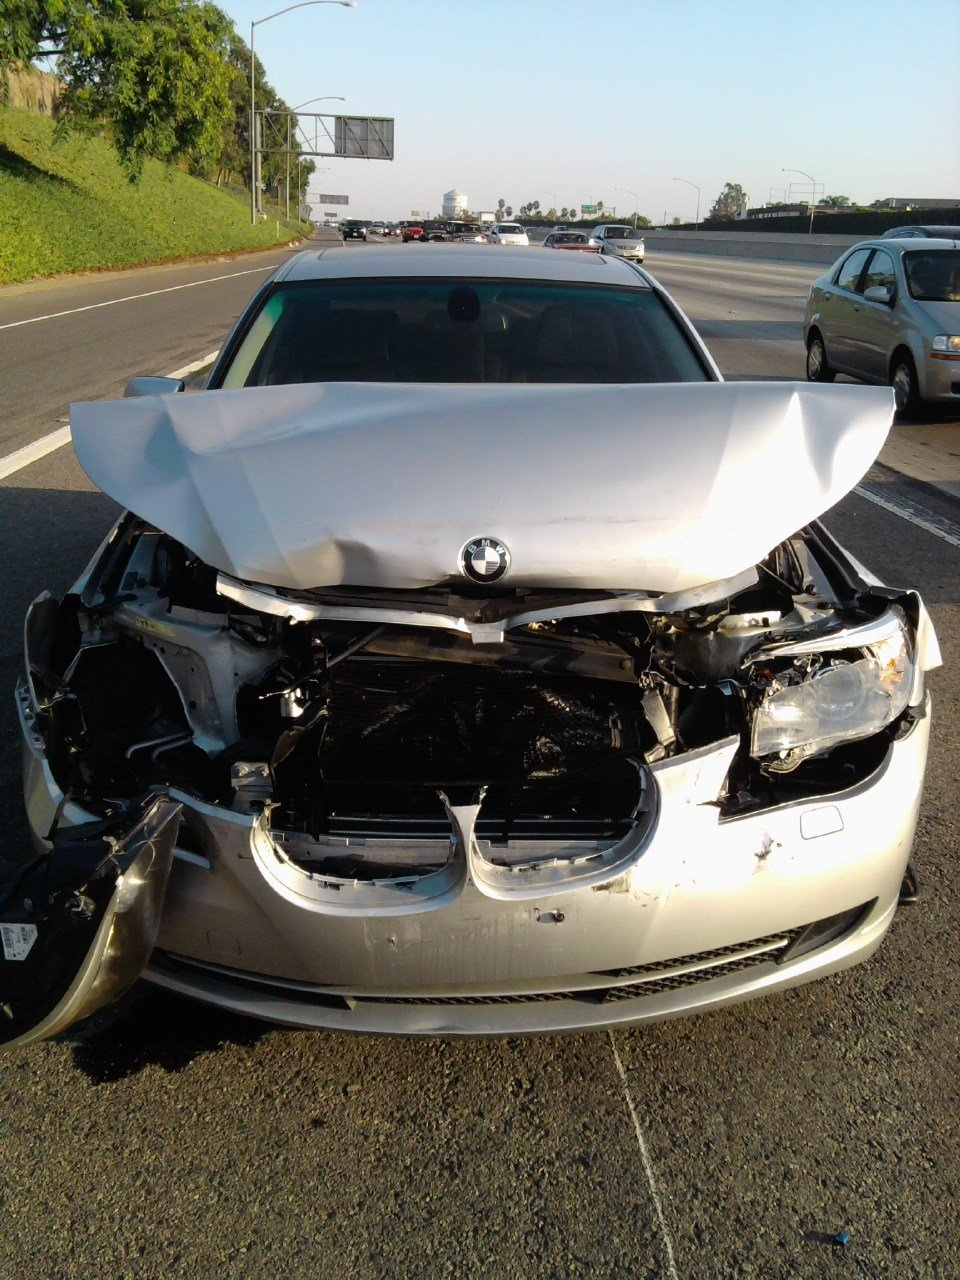 Latest Pictures Of My Bmw Crash 5Series Net Forums Free Download